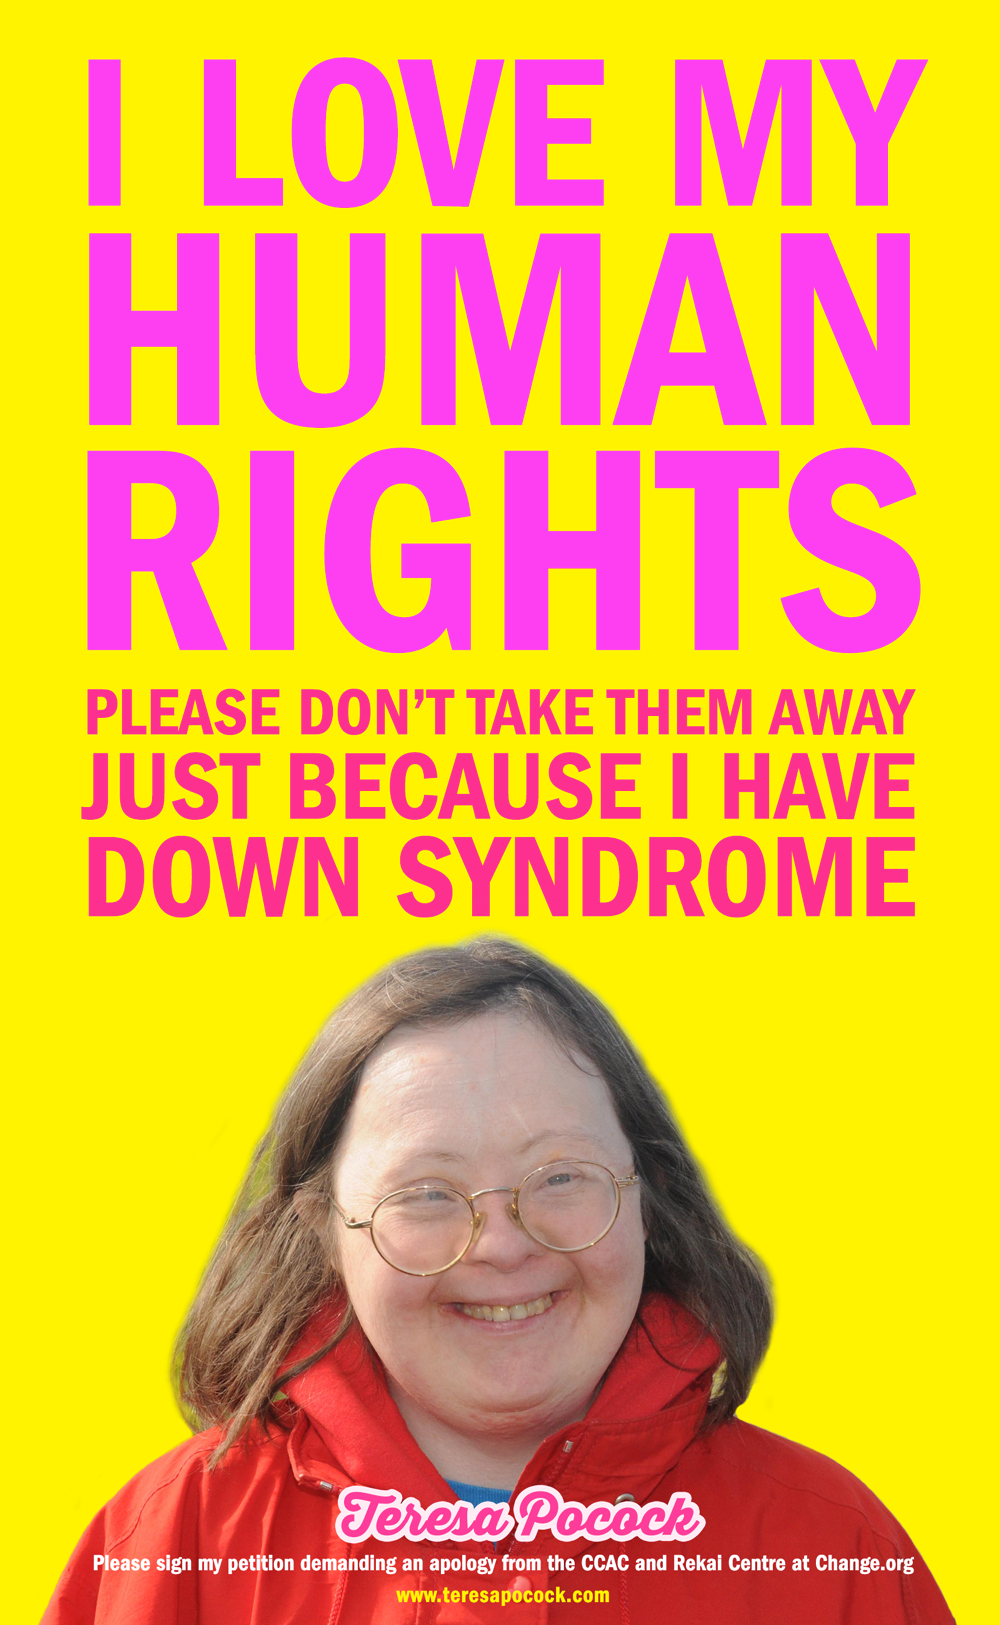 Teresa Pocock: I Love My Human Rights